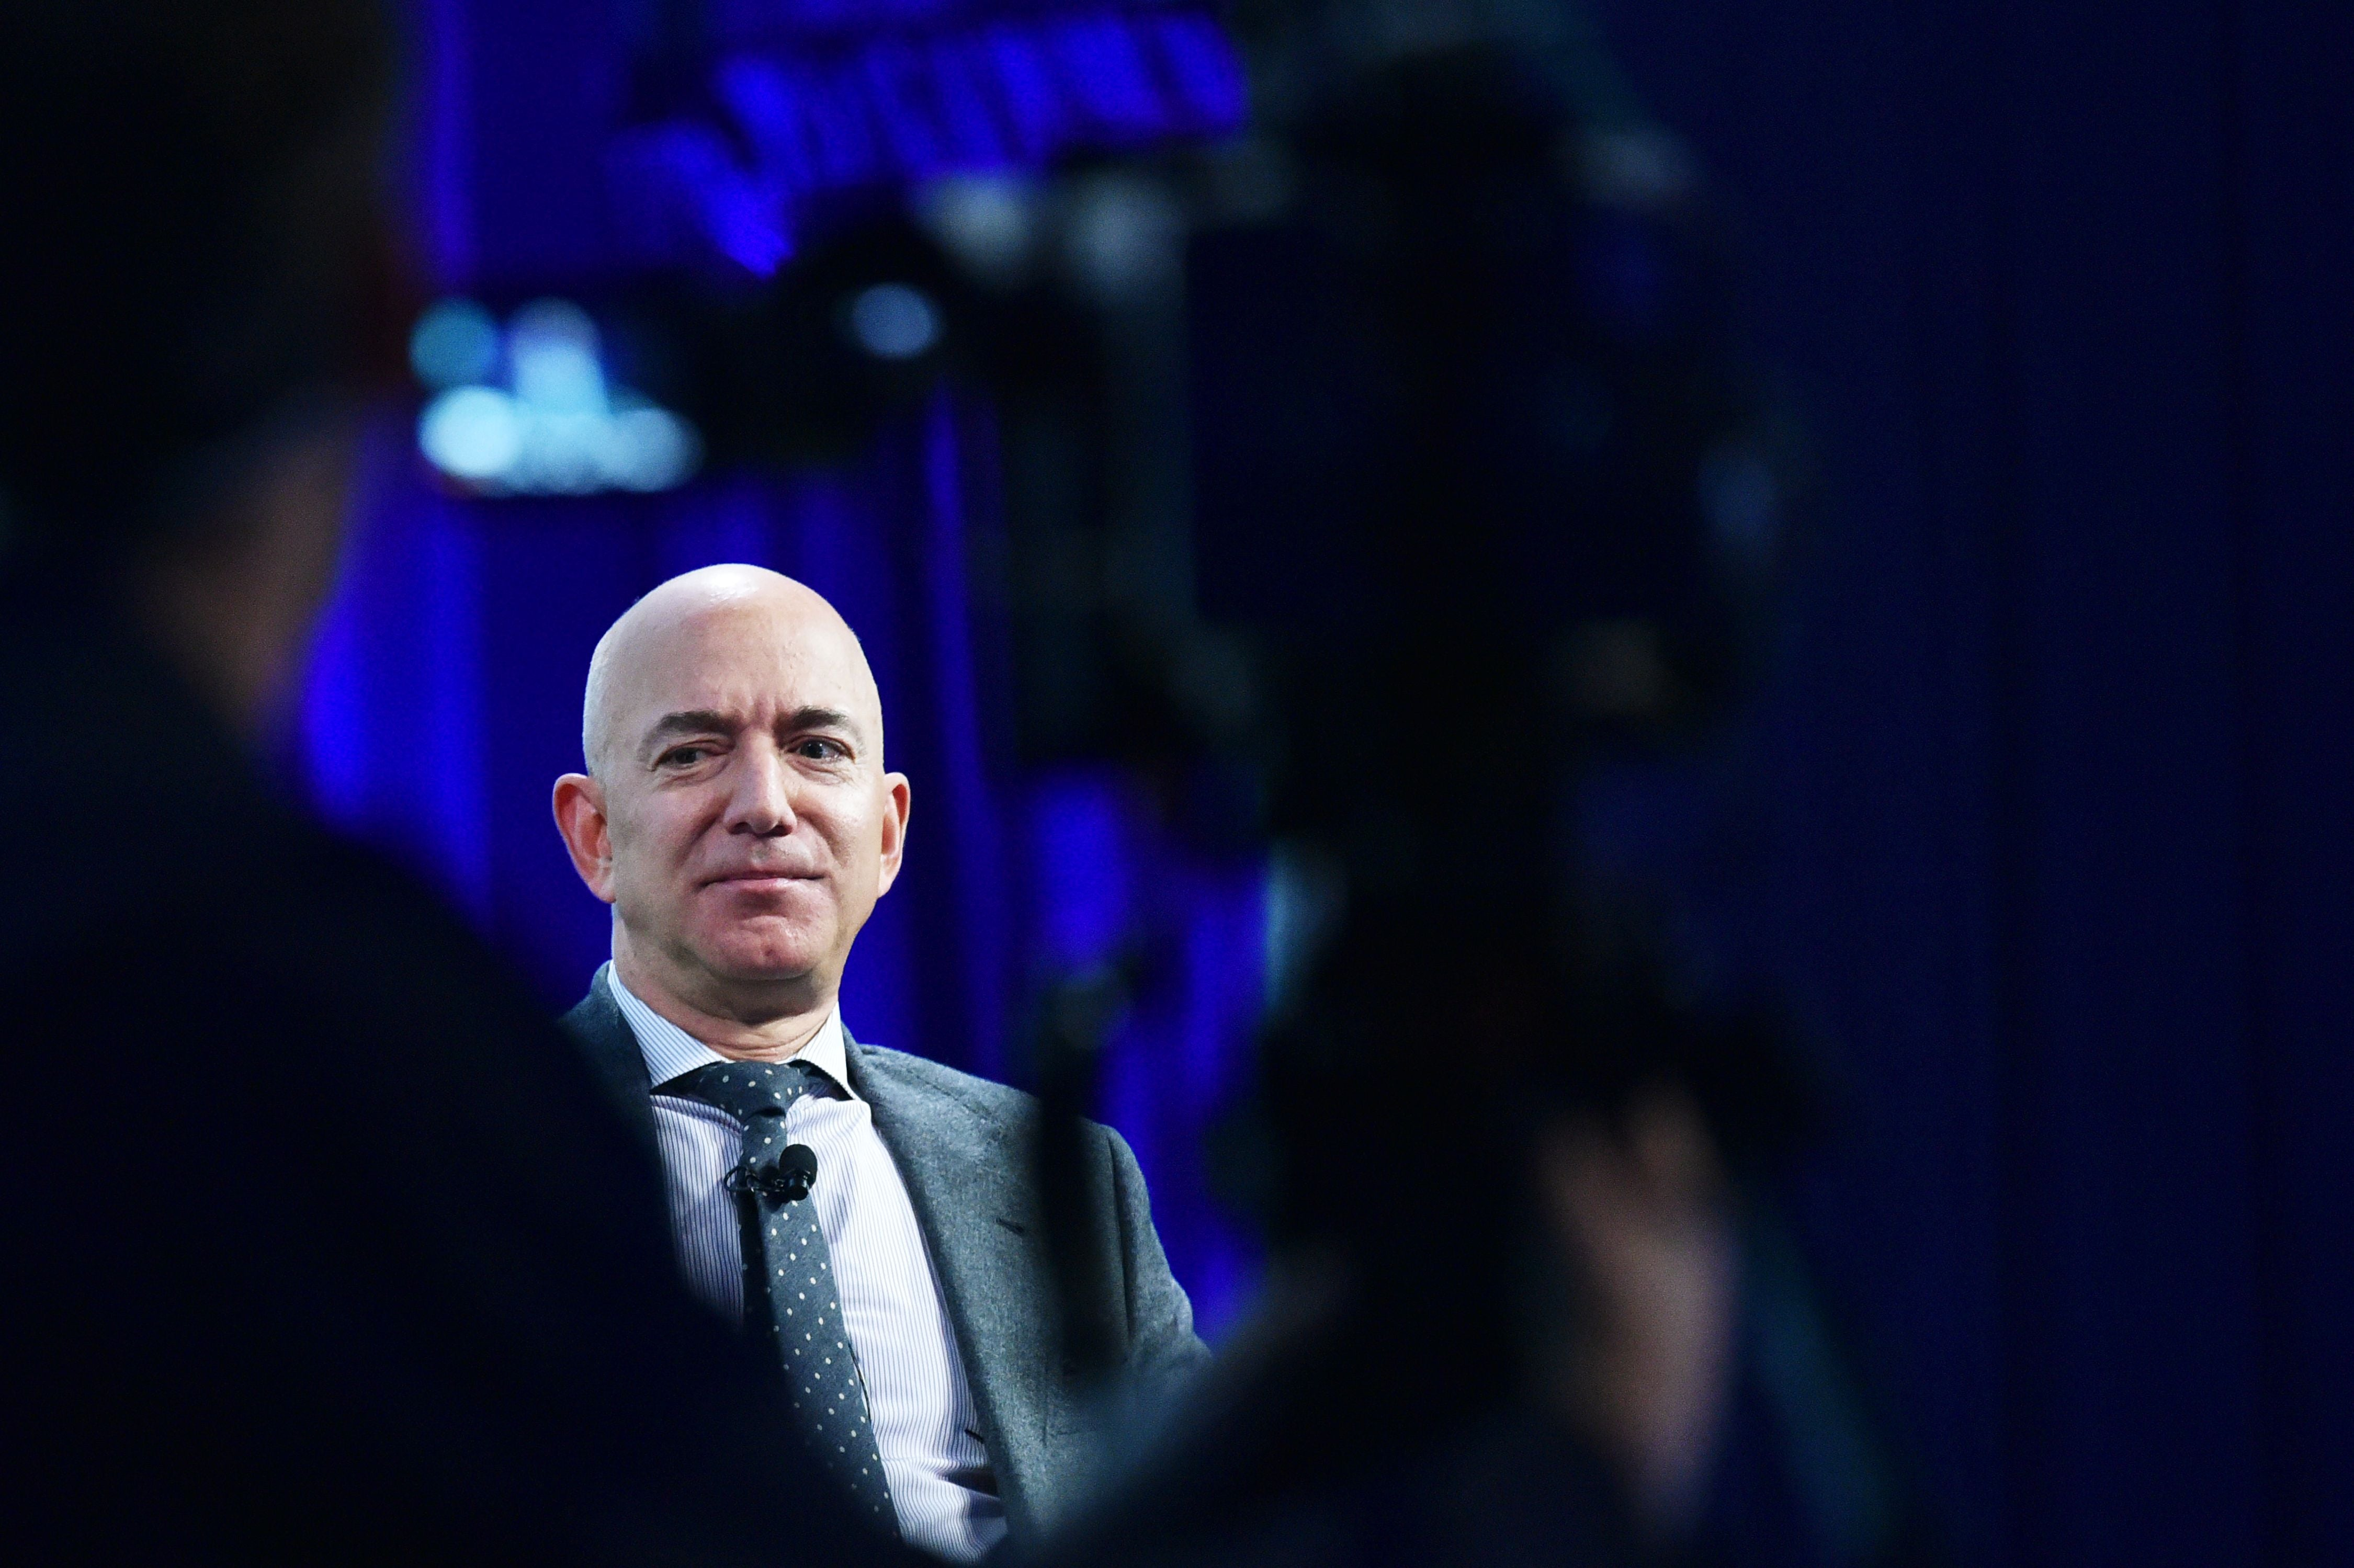 From cheap books to the space race: How Amazon's Jeff Bezos became the 'ultimate disruptor'